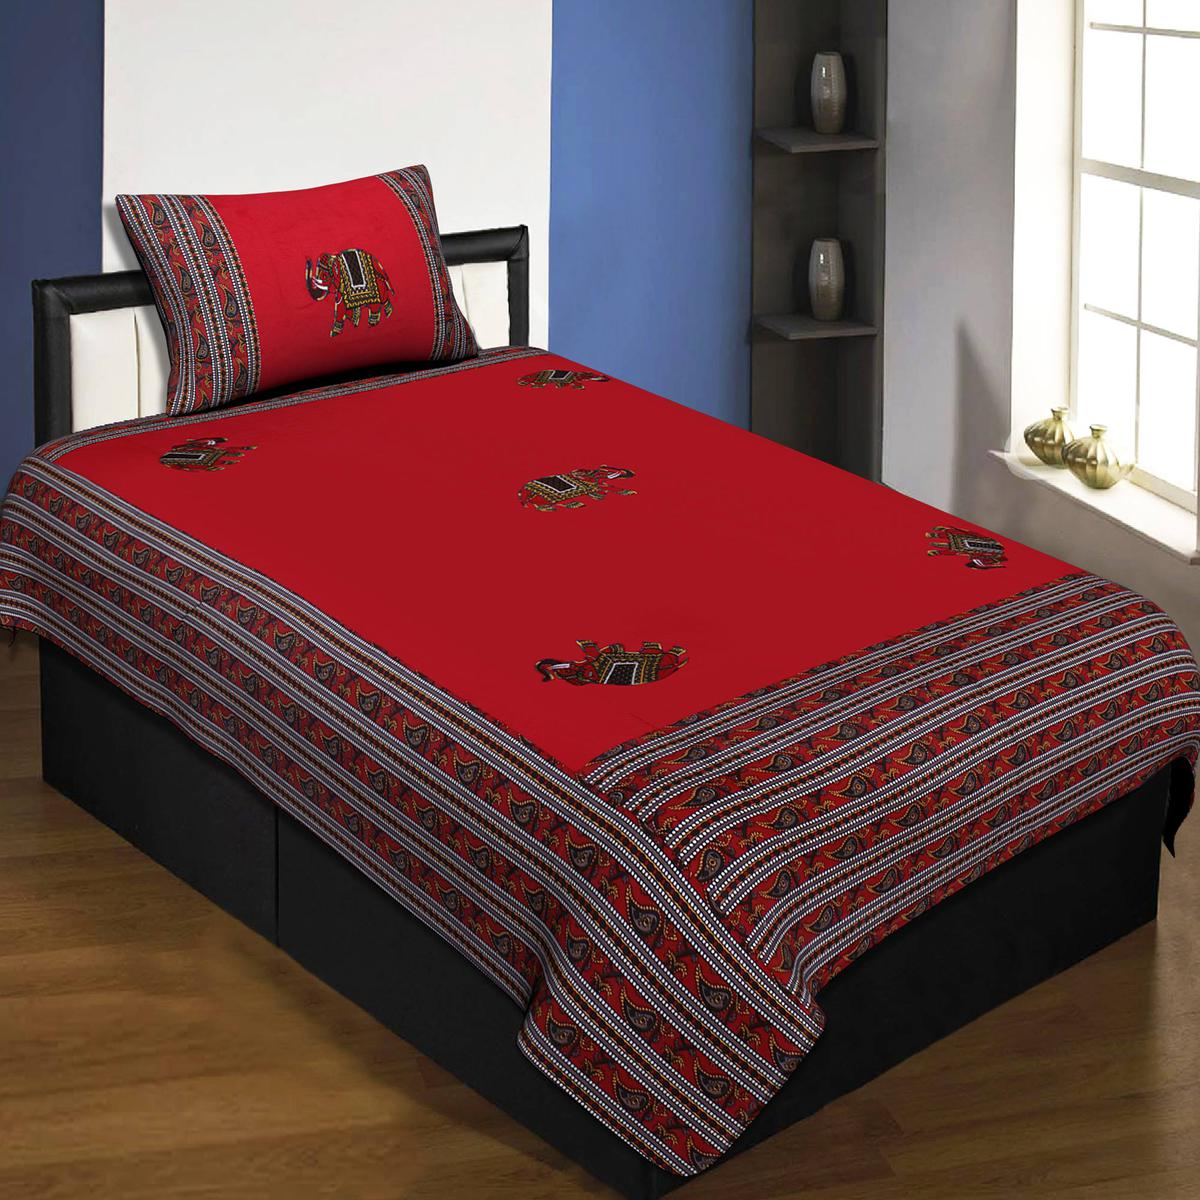 Jaipur Fabric Applique Red Elephant Jaipuri Hand Made Embroidery Patch Work Single Bedsheet With 1 Pillow Cover